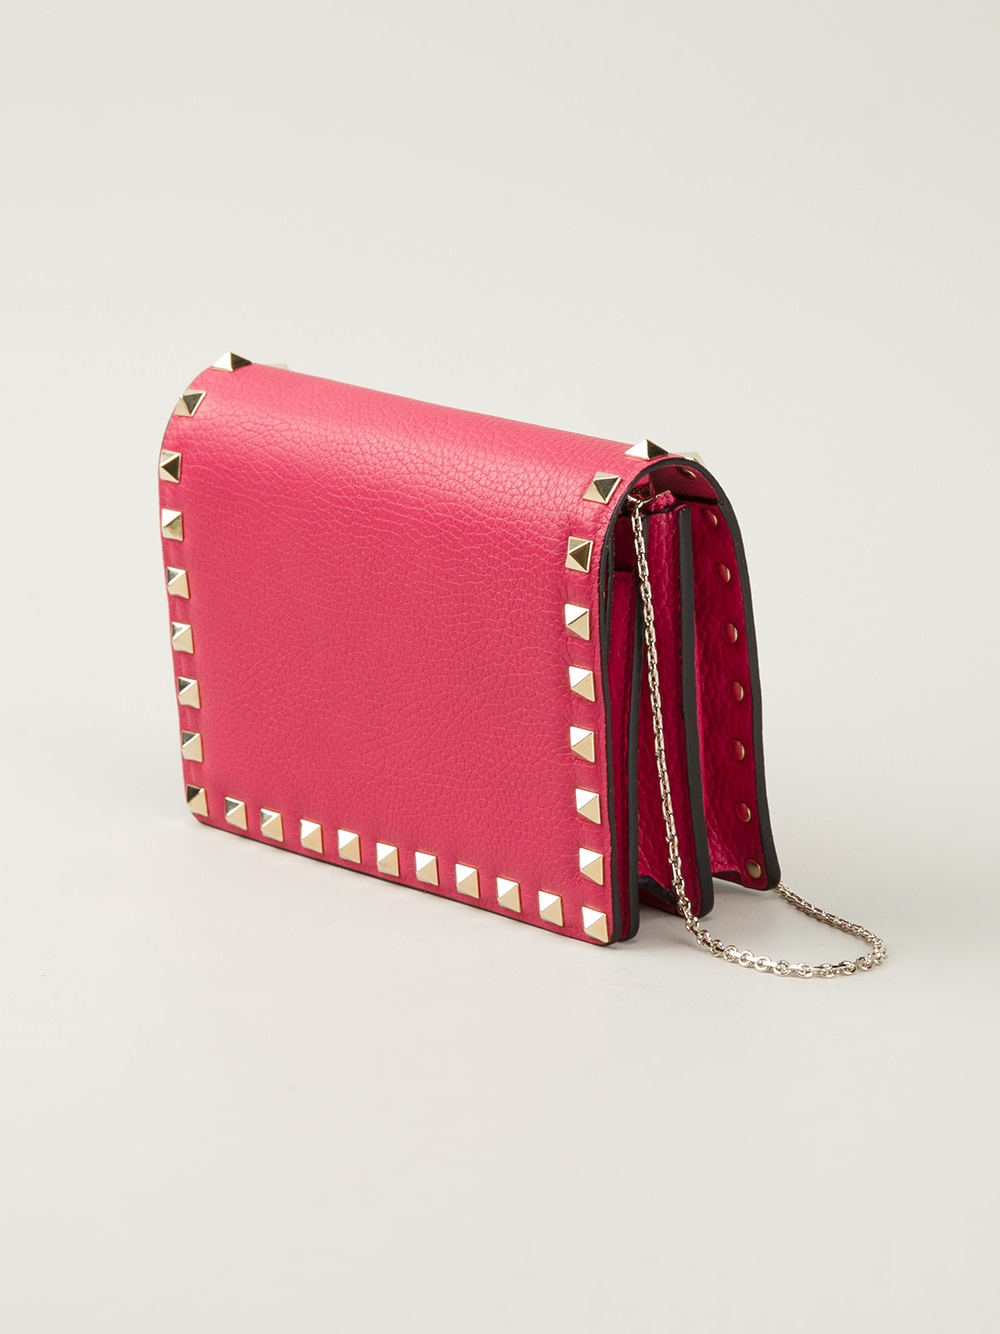 Studded Clutch with Chain Valentino ngCLPUJ7h6